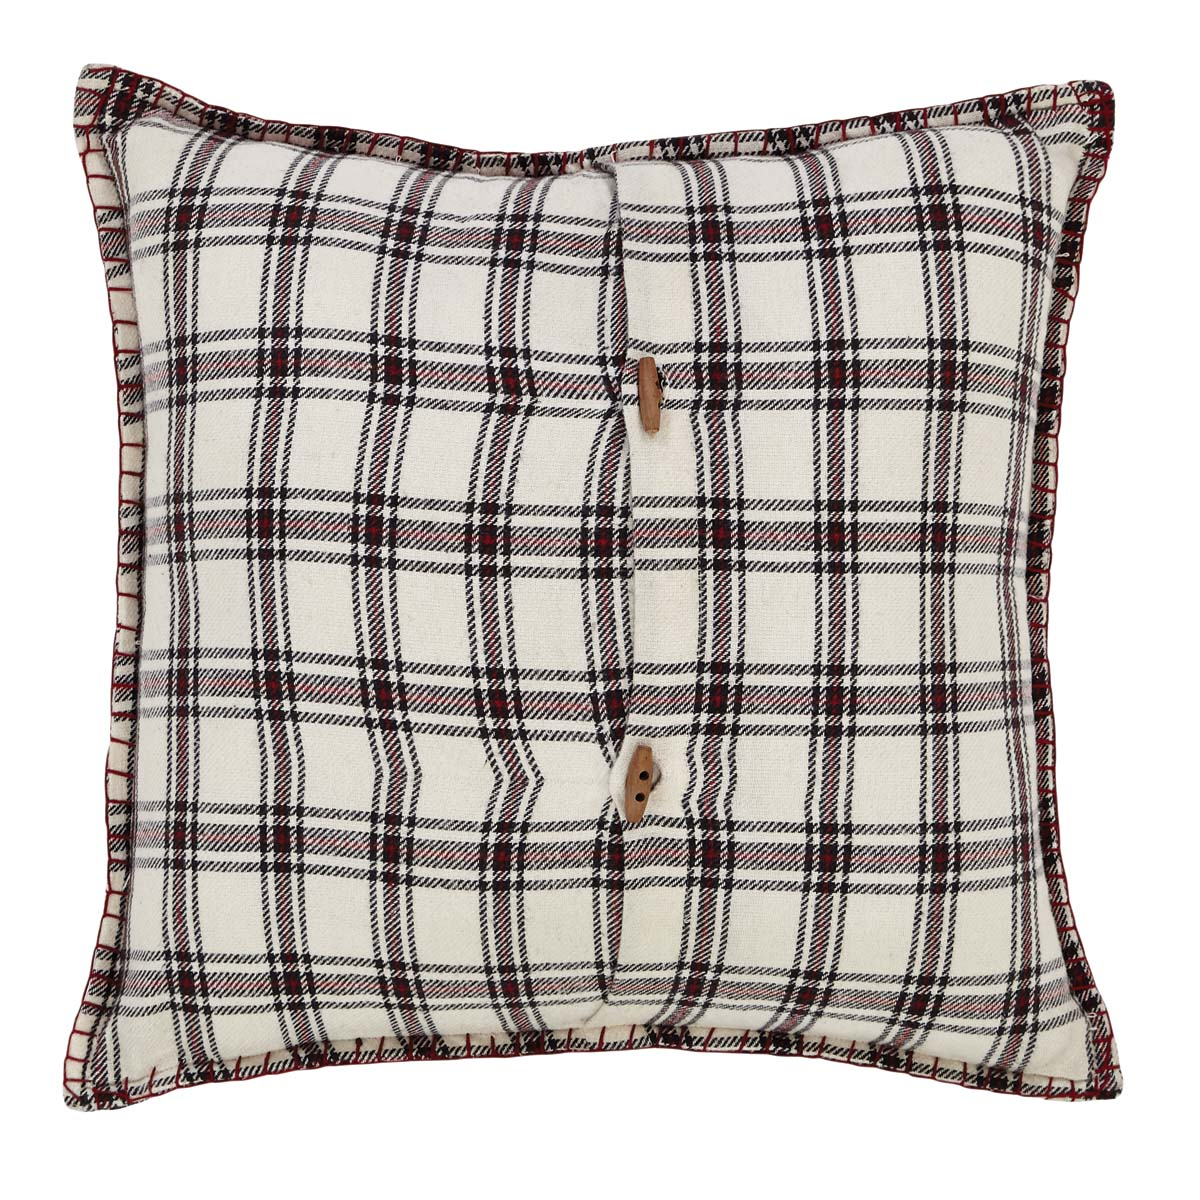 Amory-Plaid-Pillow-16x16-image-3